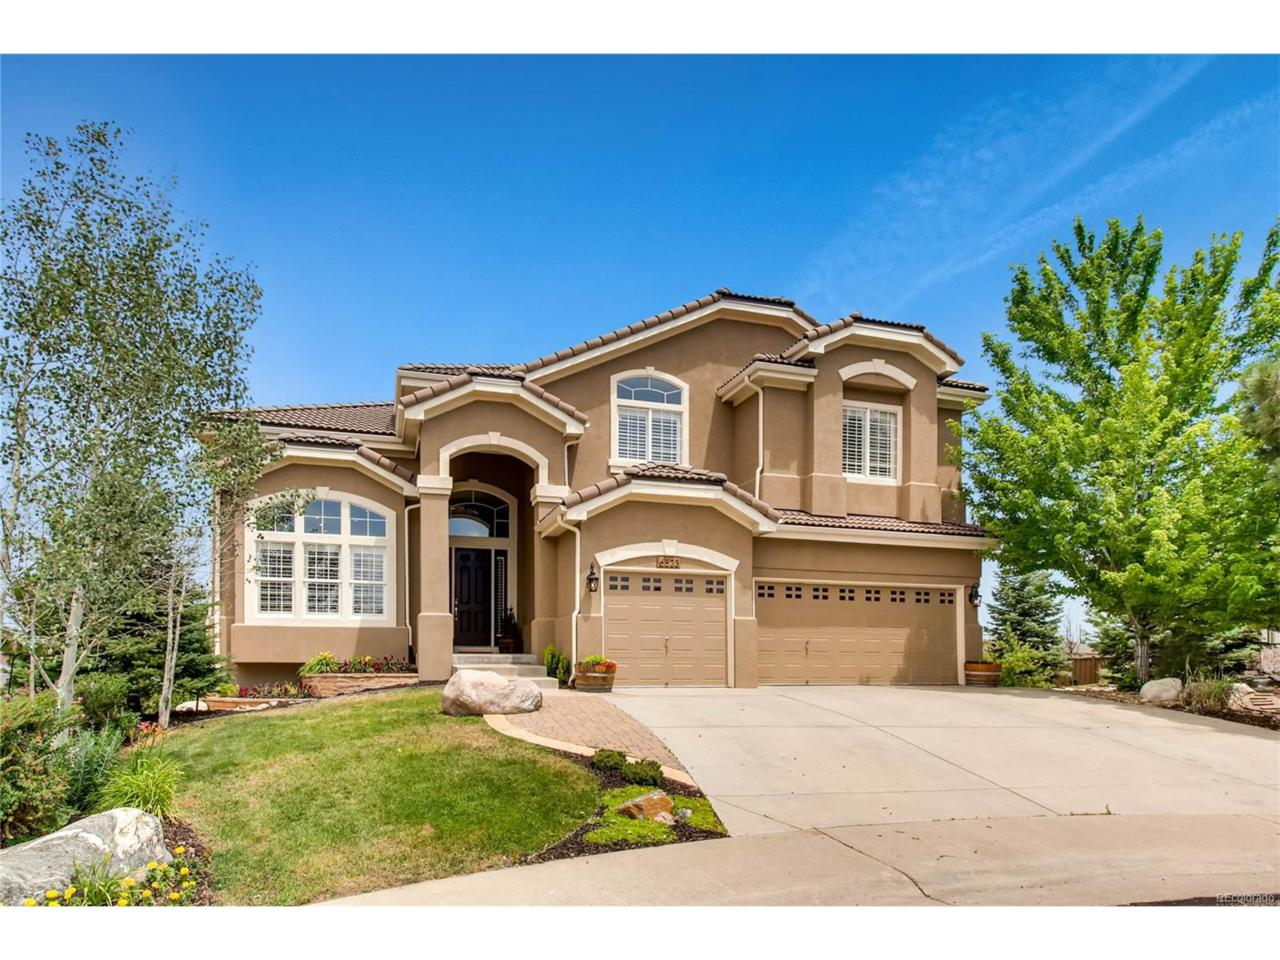 6523 Tapadero Place, Castle Pines, CO 80108 (MLS #6691067) :: 8z Real Estate